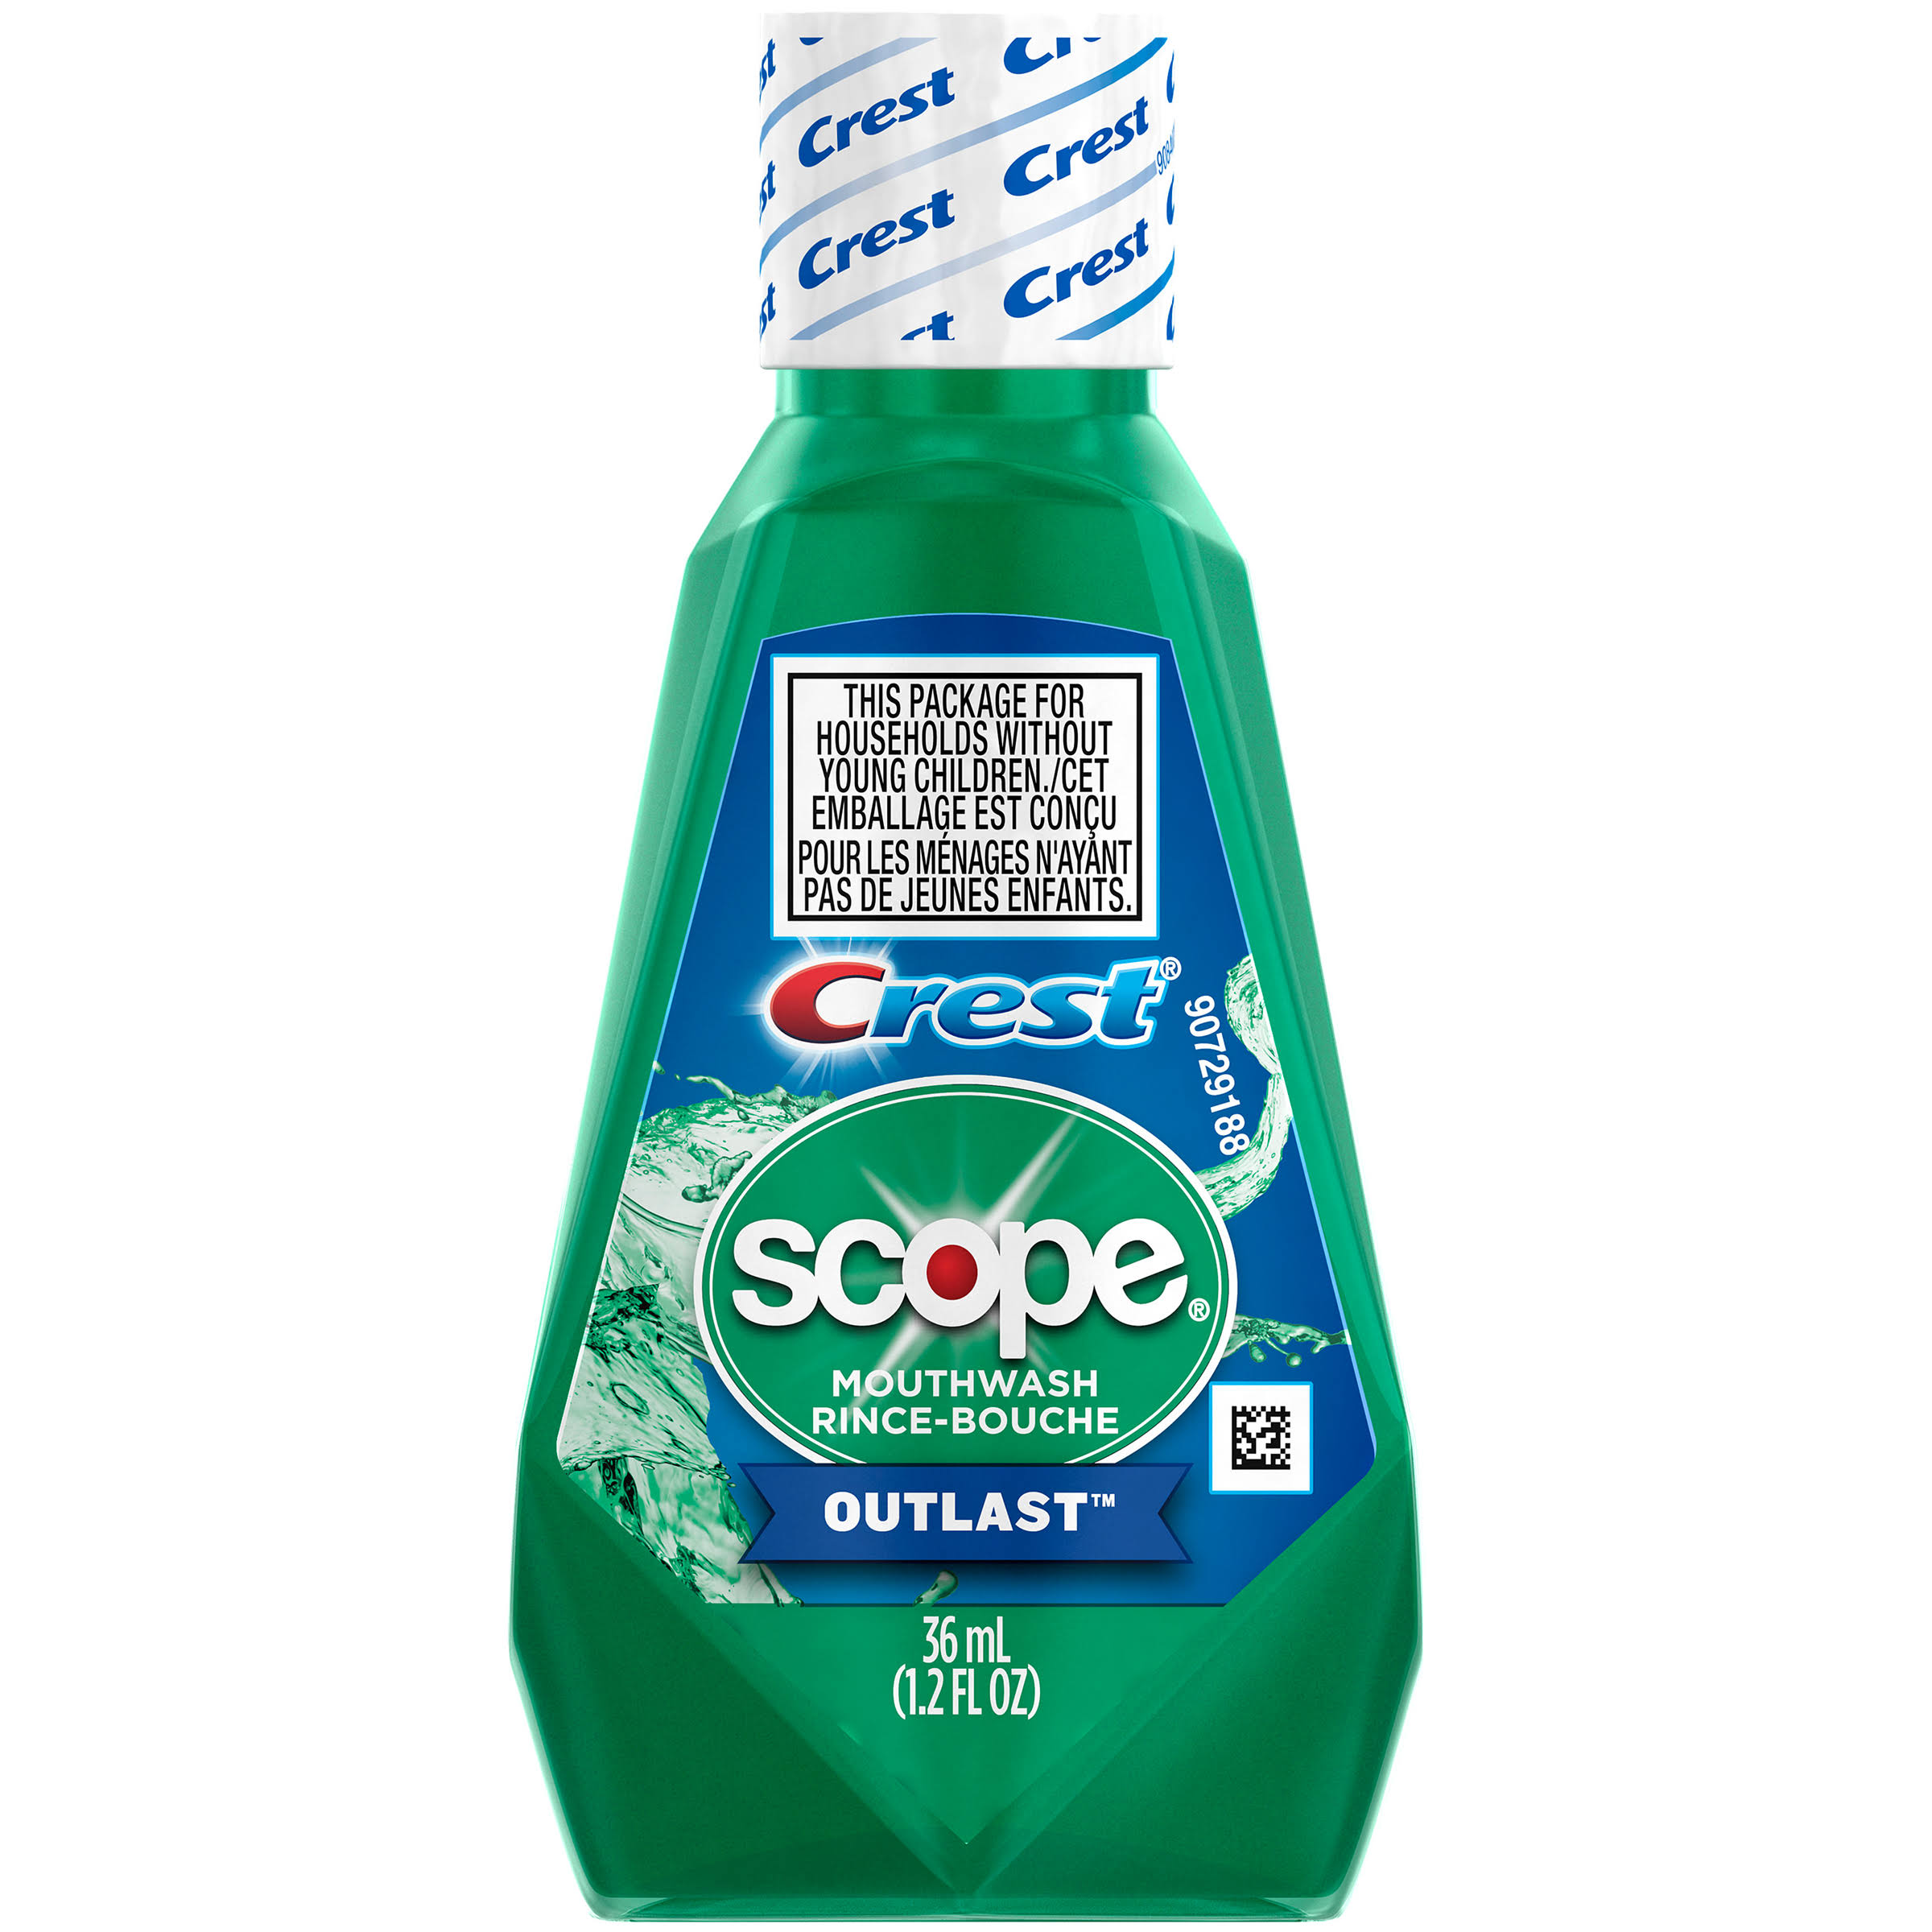 Crest Scope Outlast Mouthwash - 1.2oz